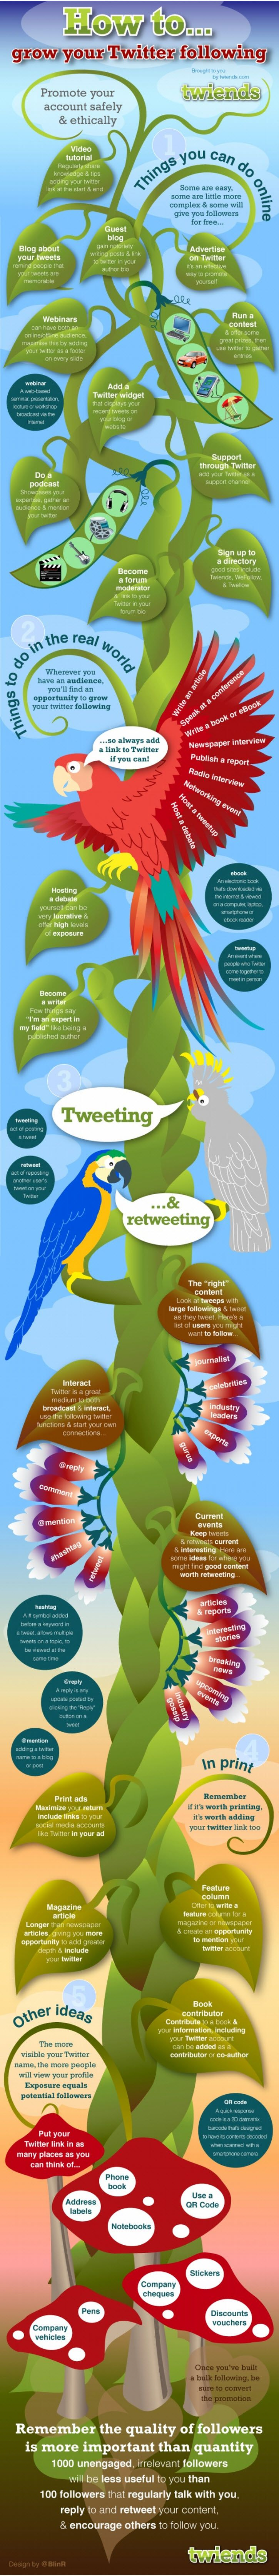 """These are some pretty fabulous """"Tweety birds""""! 40 Ways to Increase your Twitter Followers - Infographic http://www.jeffbullas.stfi.re/2013/03/26/40-ways-to-increase-your-twitter-followers-plus-infographic/?sf=jebgky"""